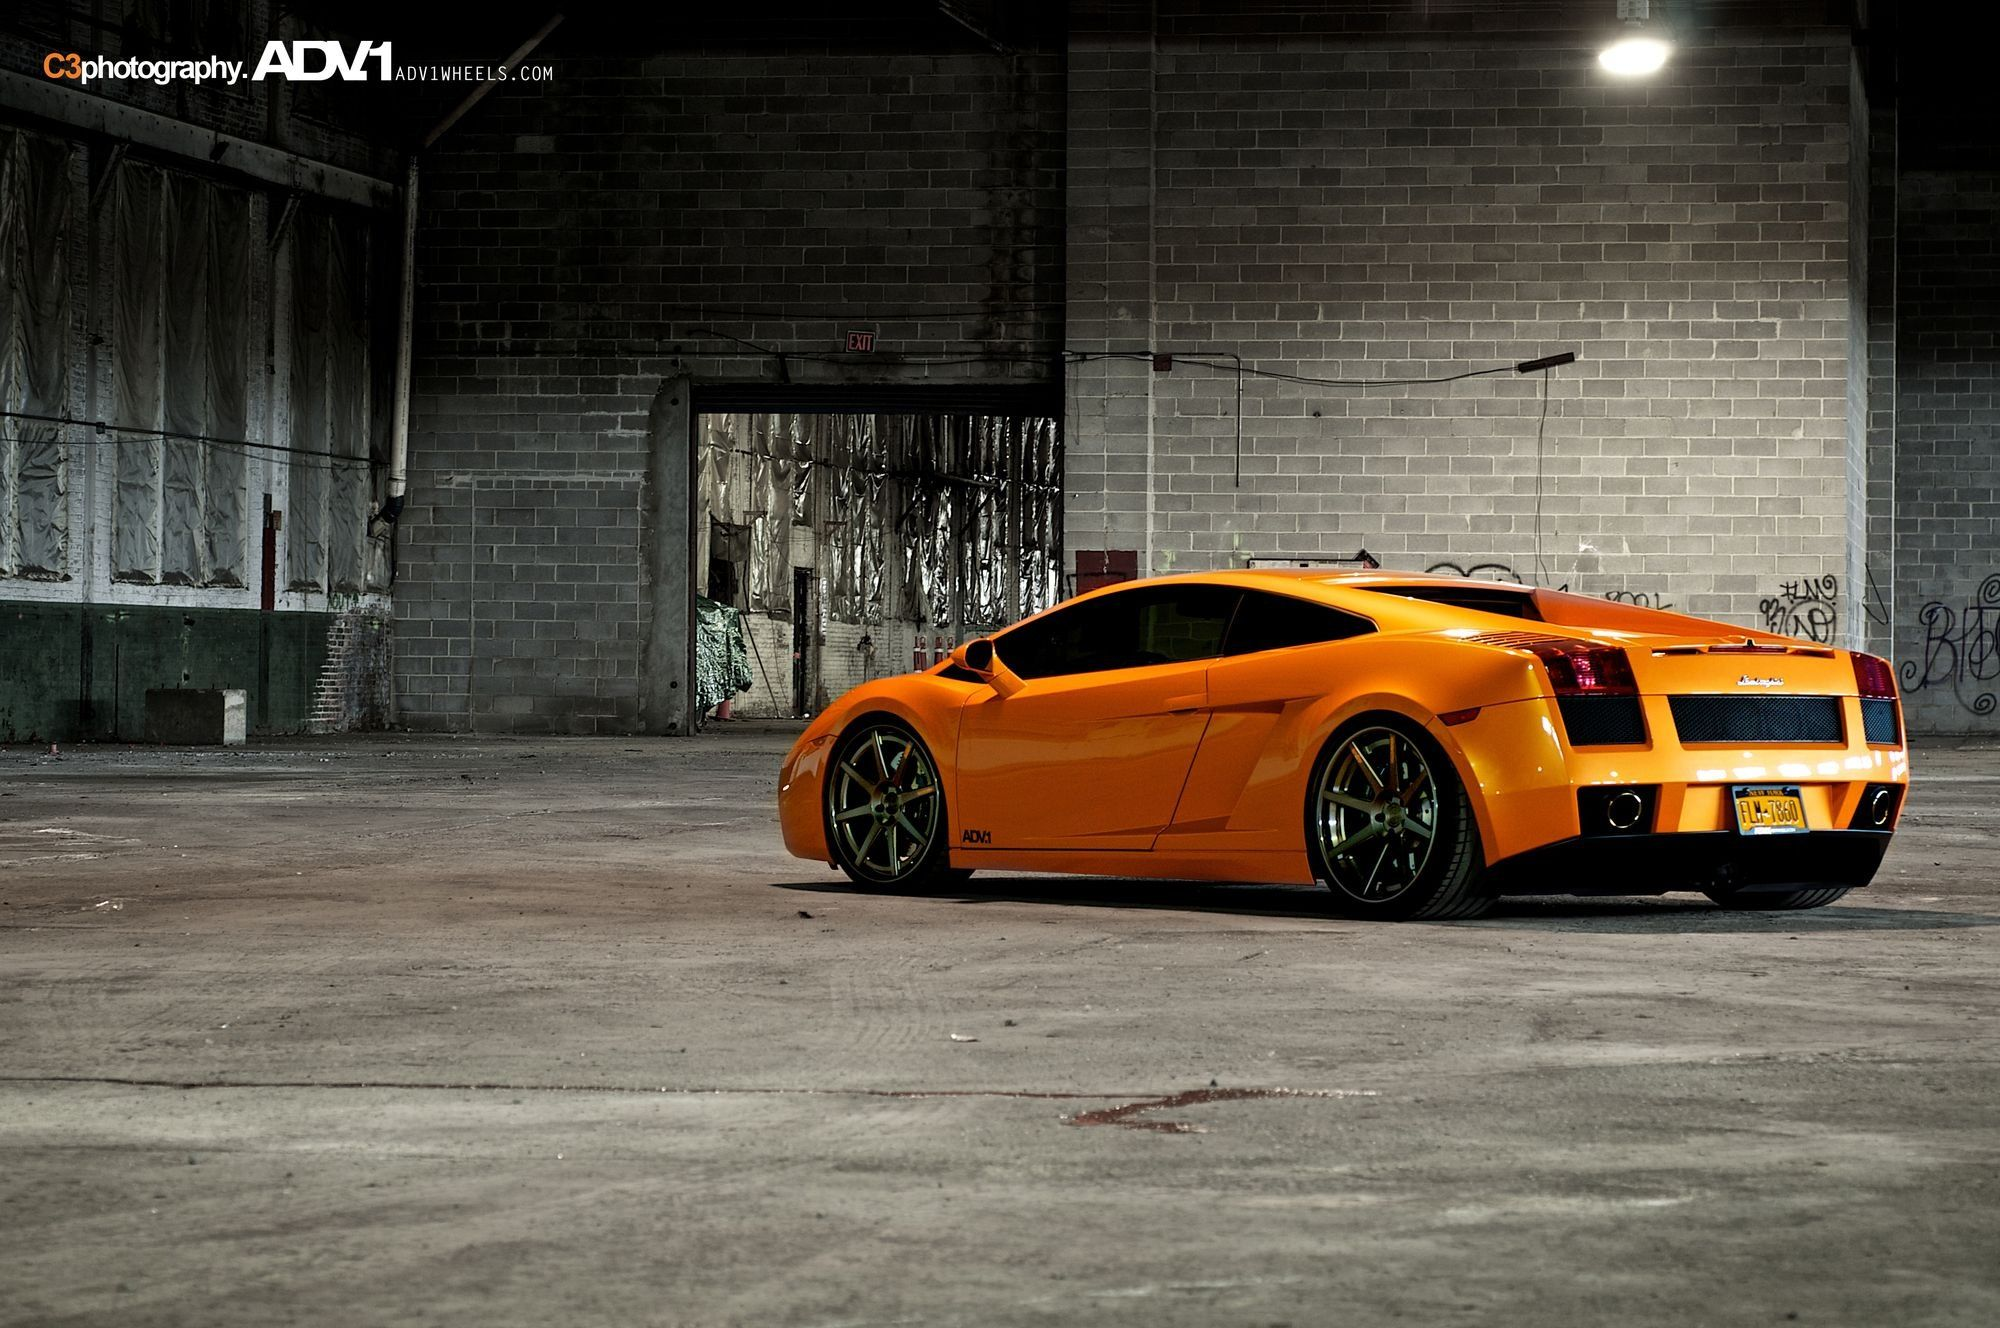 Luxurious Lamborghini Gallardo Rolling On Adv1 Custom Wheels Car